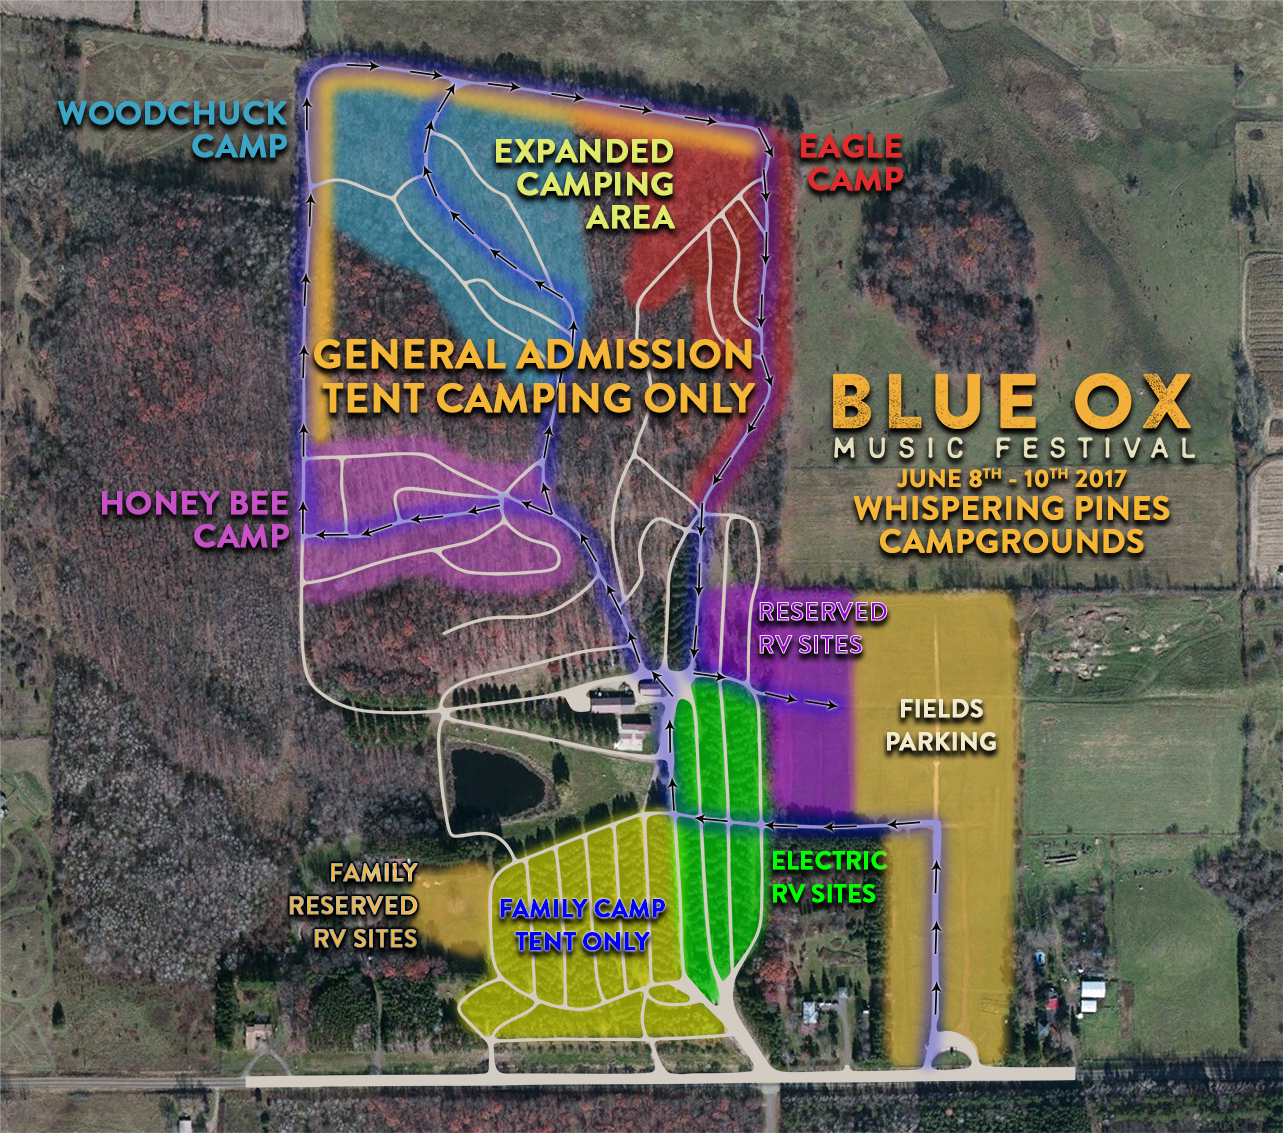 Blue Ox Music Festival Parking and Camping Information